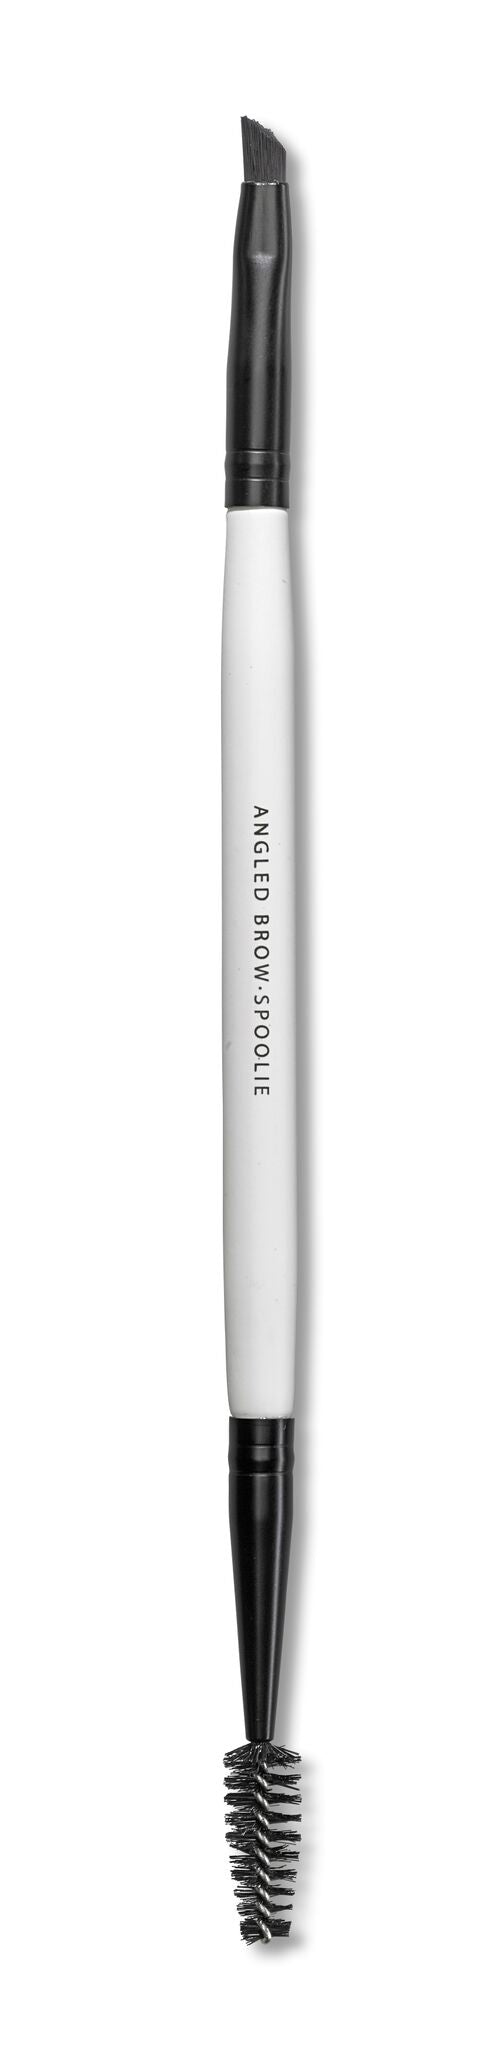 Lily Lolo Angled Brow – Spoolie Brush